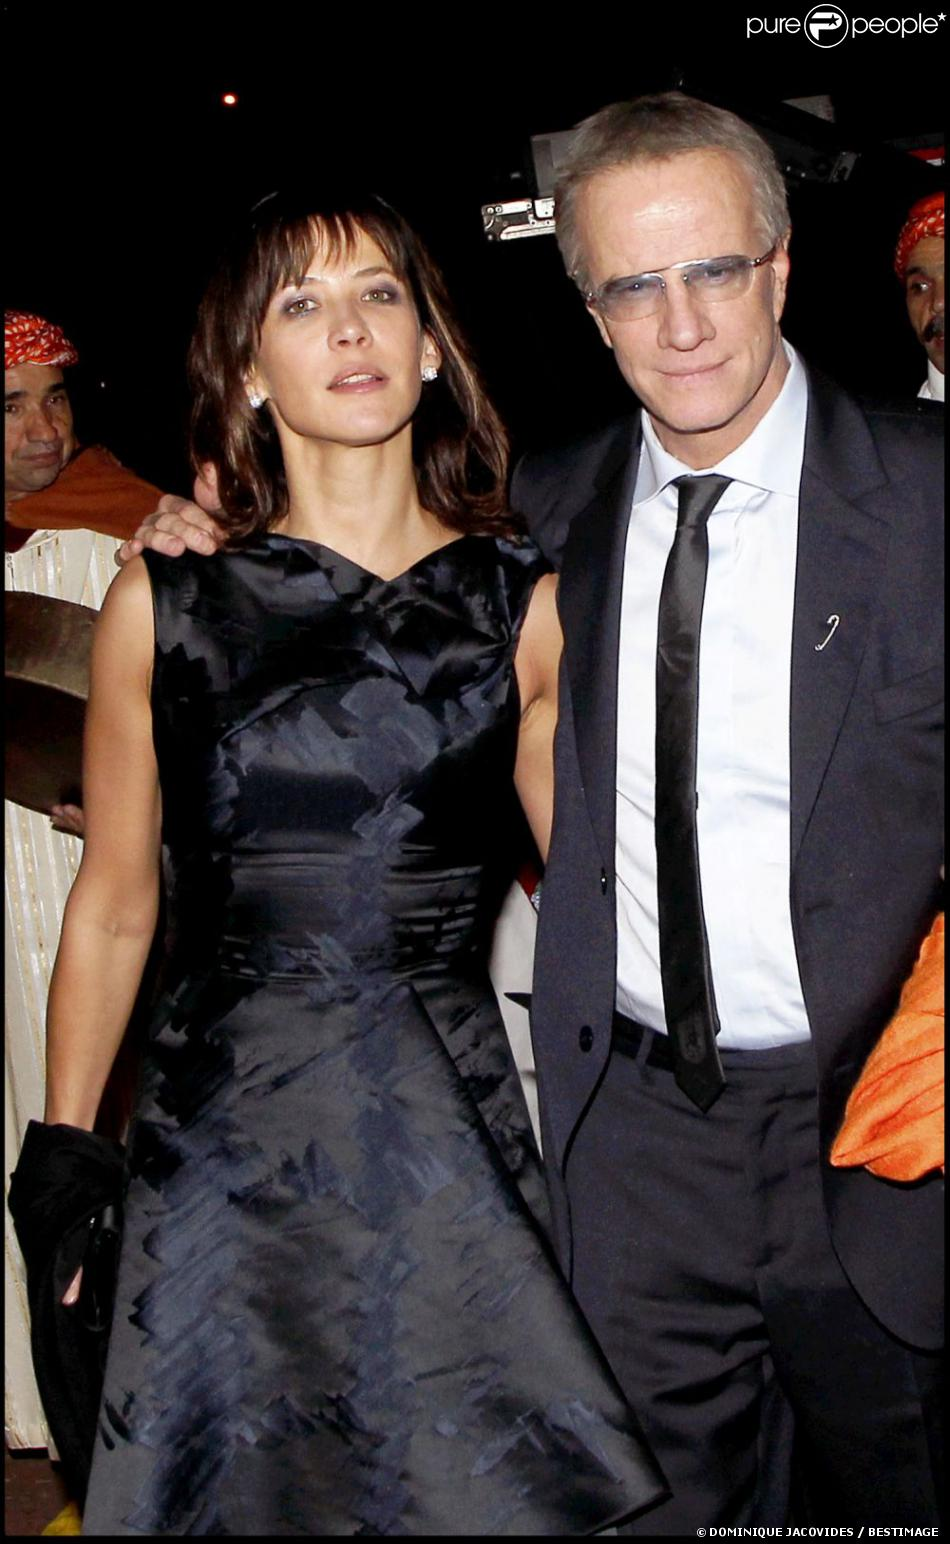 sophie marceau et son compagnon christophe lambert marrakech le 4 d cembre 2010 purepeople. Black Bedroom Furniture Sets. Home Design Ideas